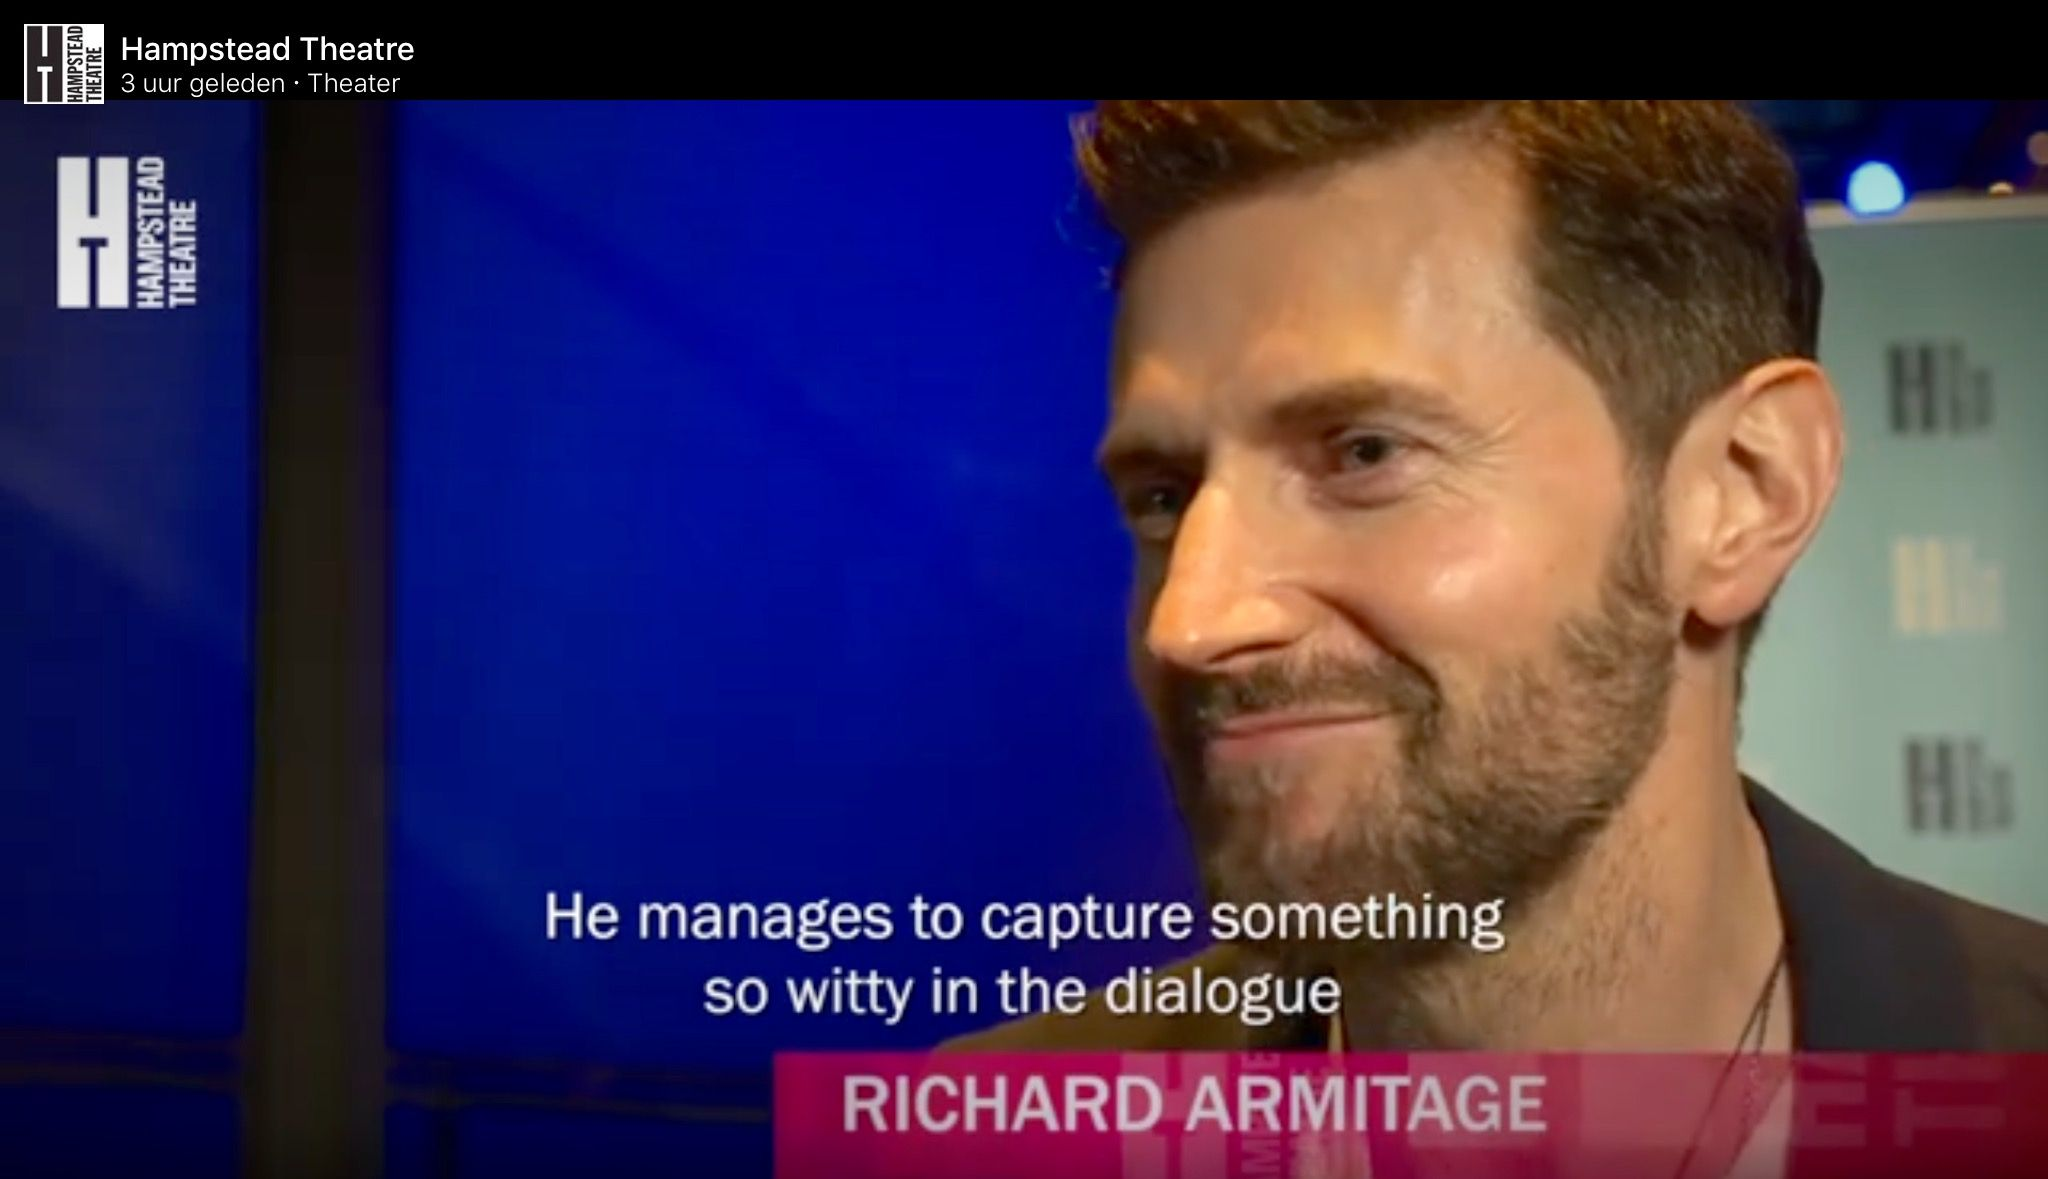 """""""You just have to see this play"""" Richard's reaction on seeing the play Wild, written by Mike Bartlett (also winter of Love love love) in the Hampstead Theatre in London, 16-6-2016"""